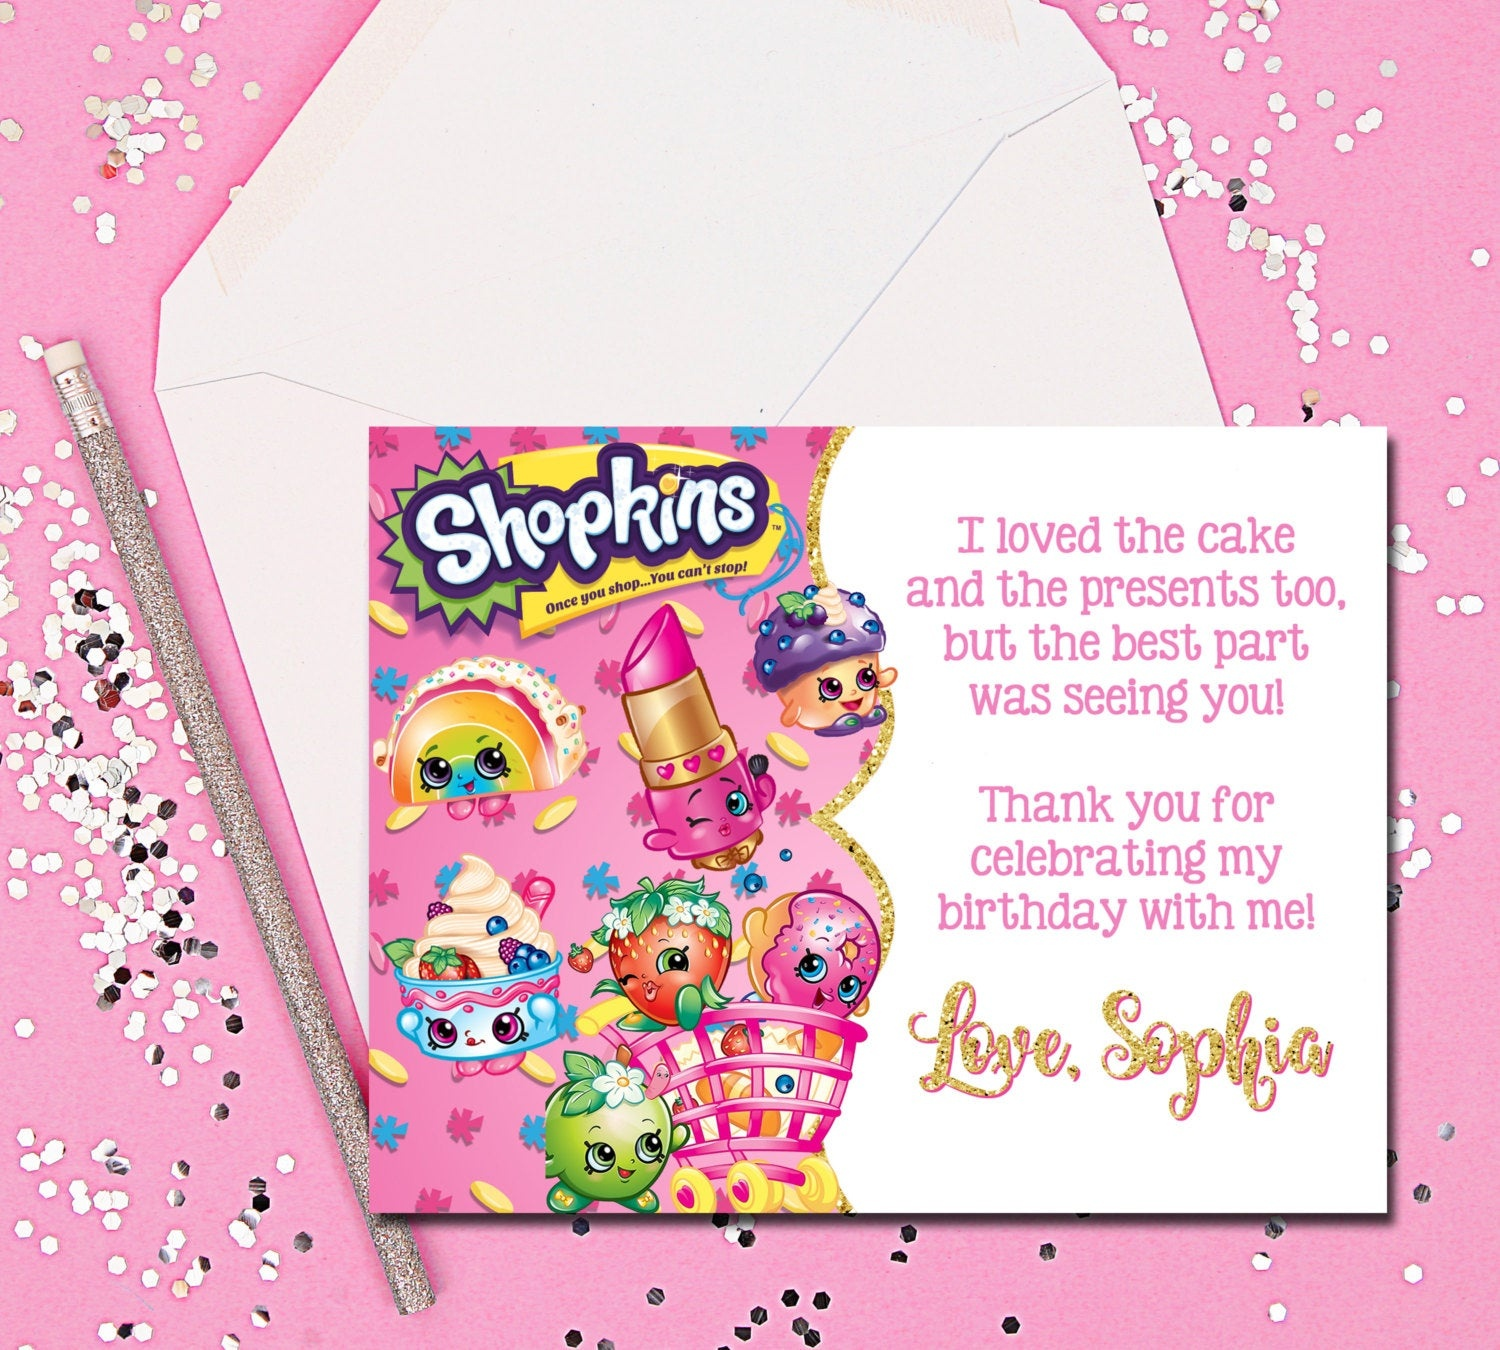 Thank You Cards Shopkins Thank You Cards Shopkins Thank You | Etsy - Free Printable Shopkins Thank You Cards